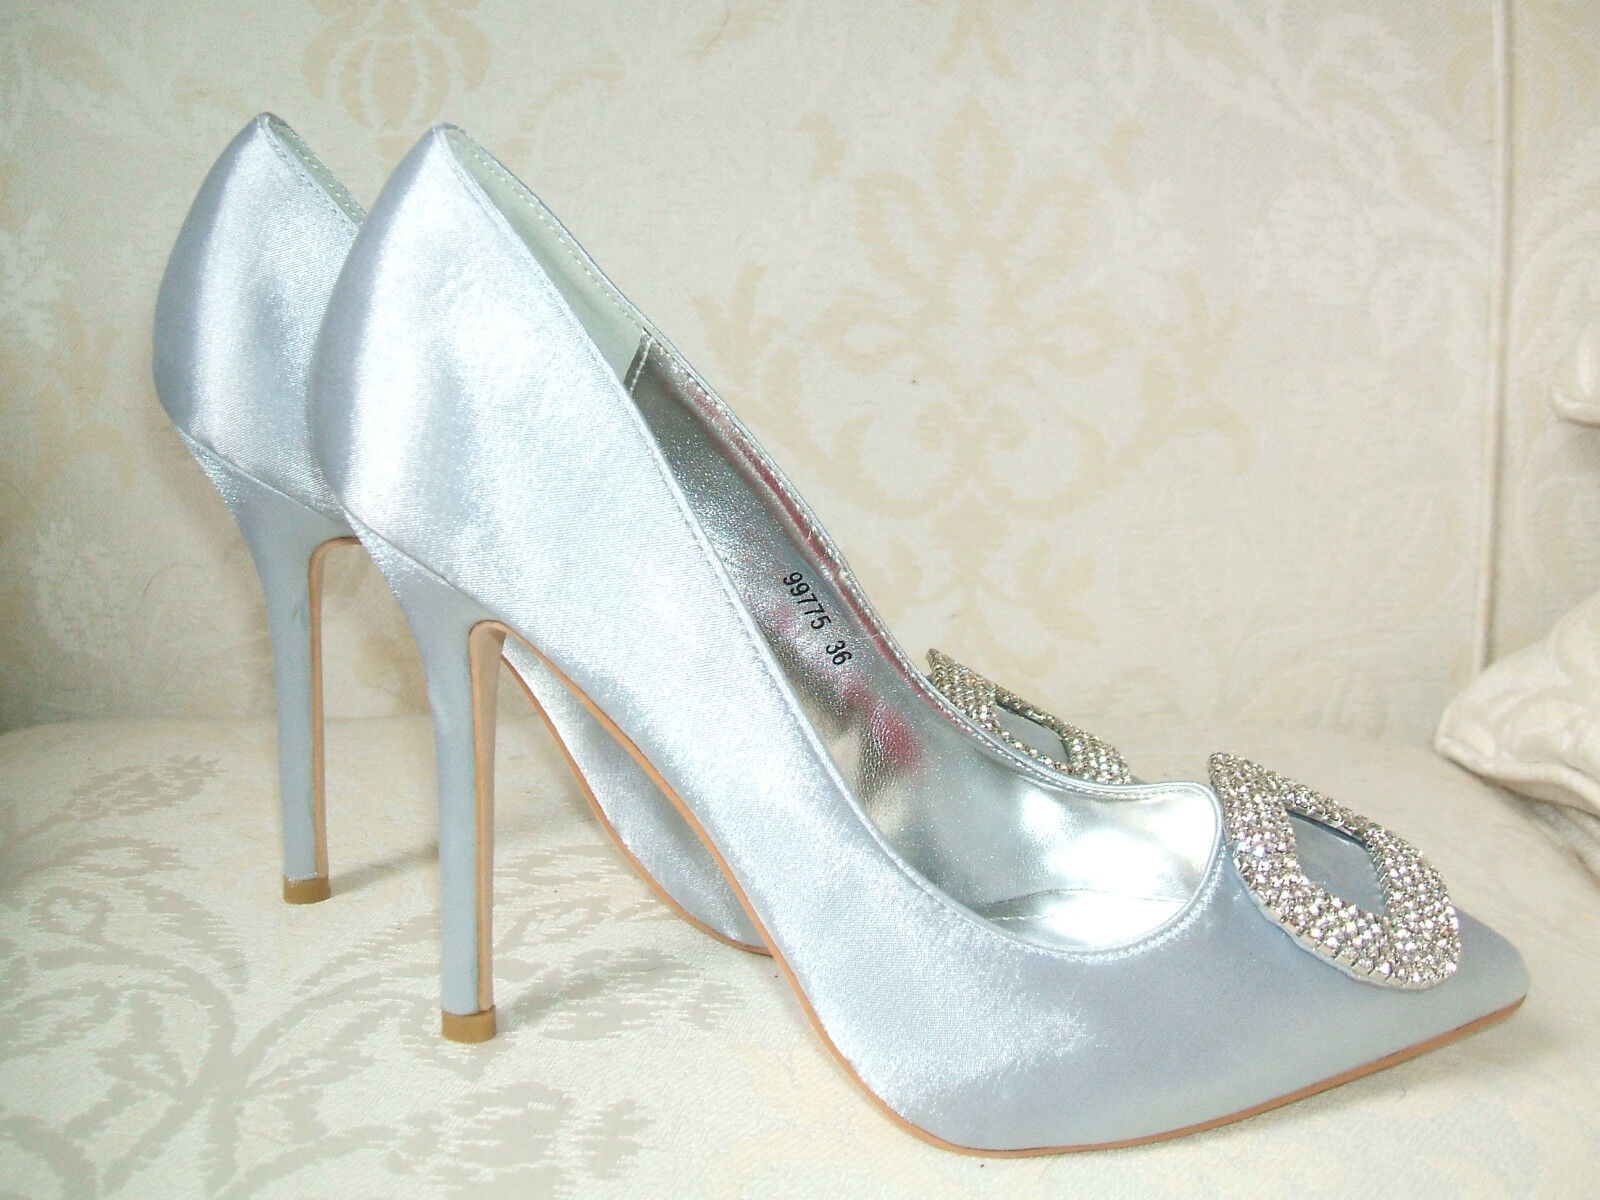 BN SIZE 2.5 3 3.5 4 5 6 DIAMANTE 7 SILVER GREY SATIN DIAMANTE 6 WEDDING OCCASION Schuhe BAG 214966